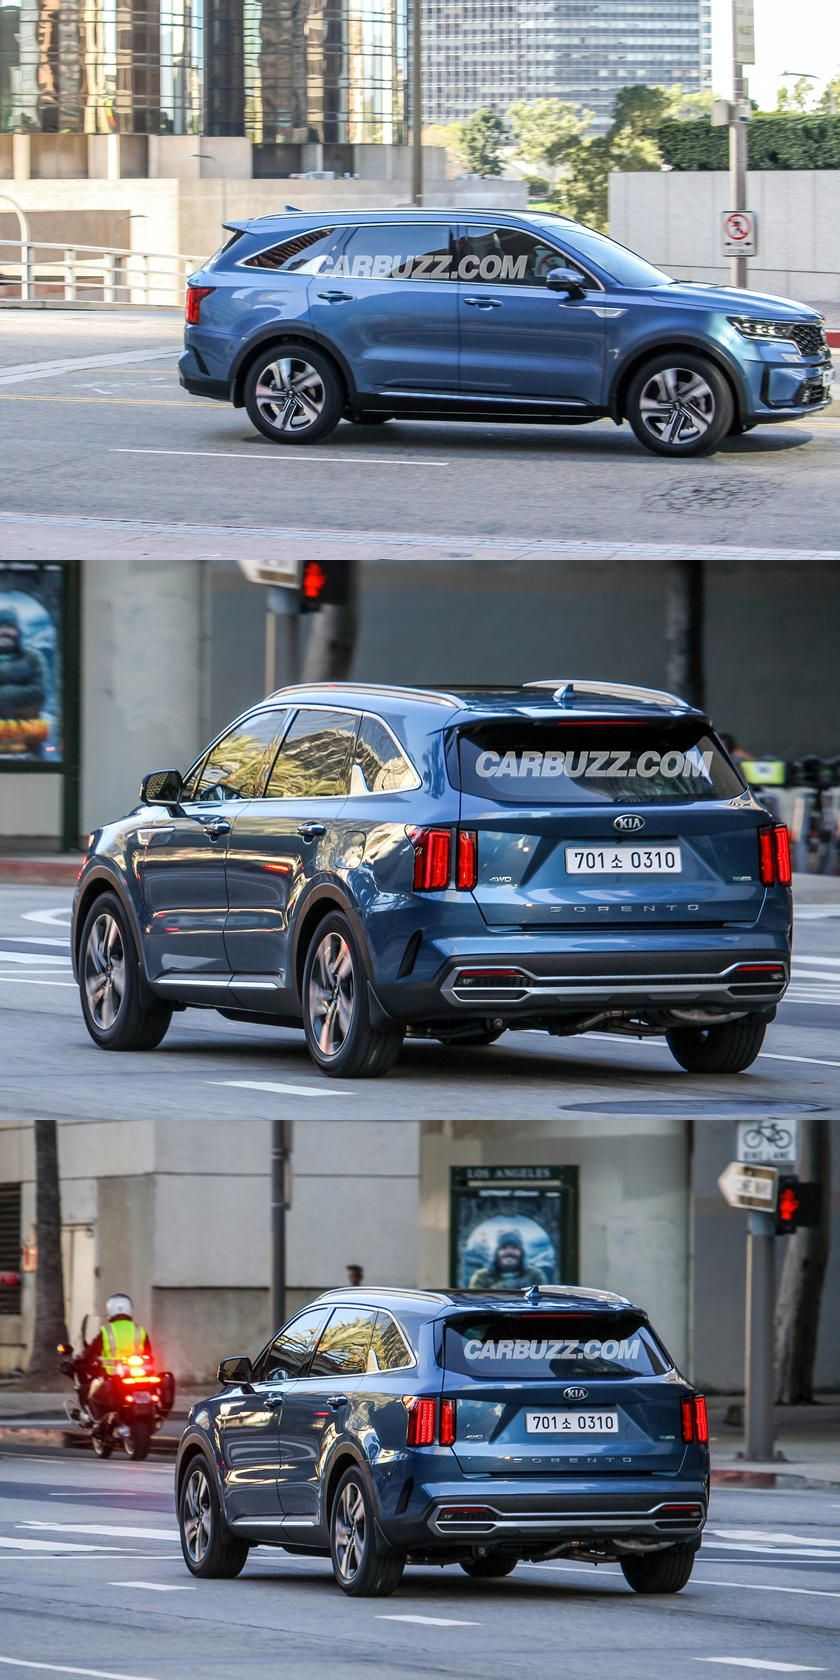 2021 Kia Sorento Spotted Completely Undisguised Check Out The Sorento Before Kia Wants You To See It In 2020 Kia Sorento Sorento Kia